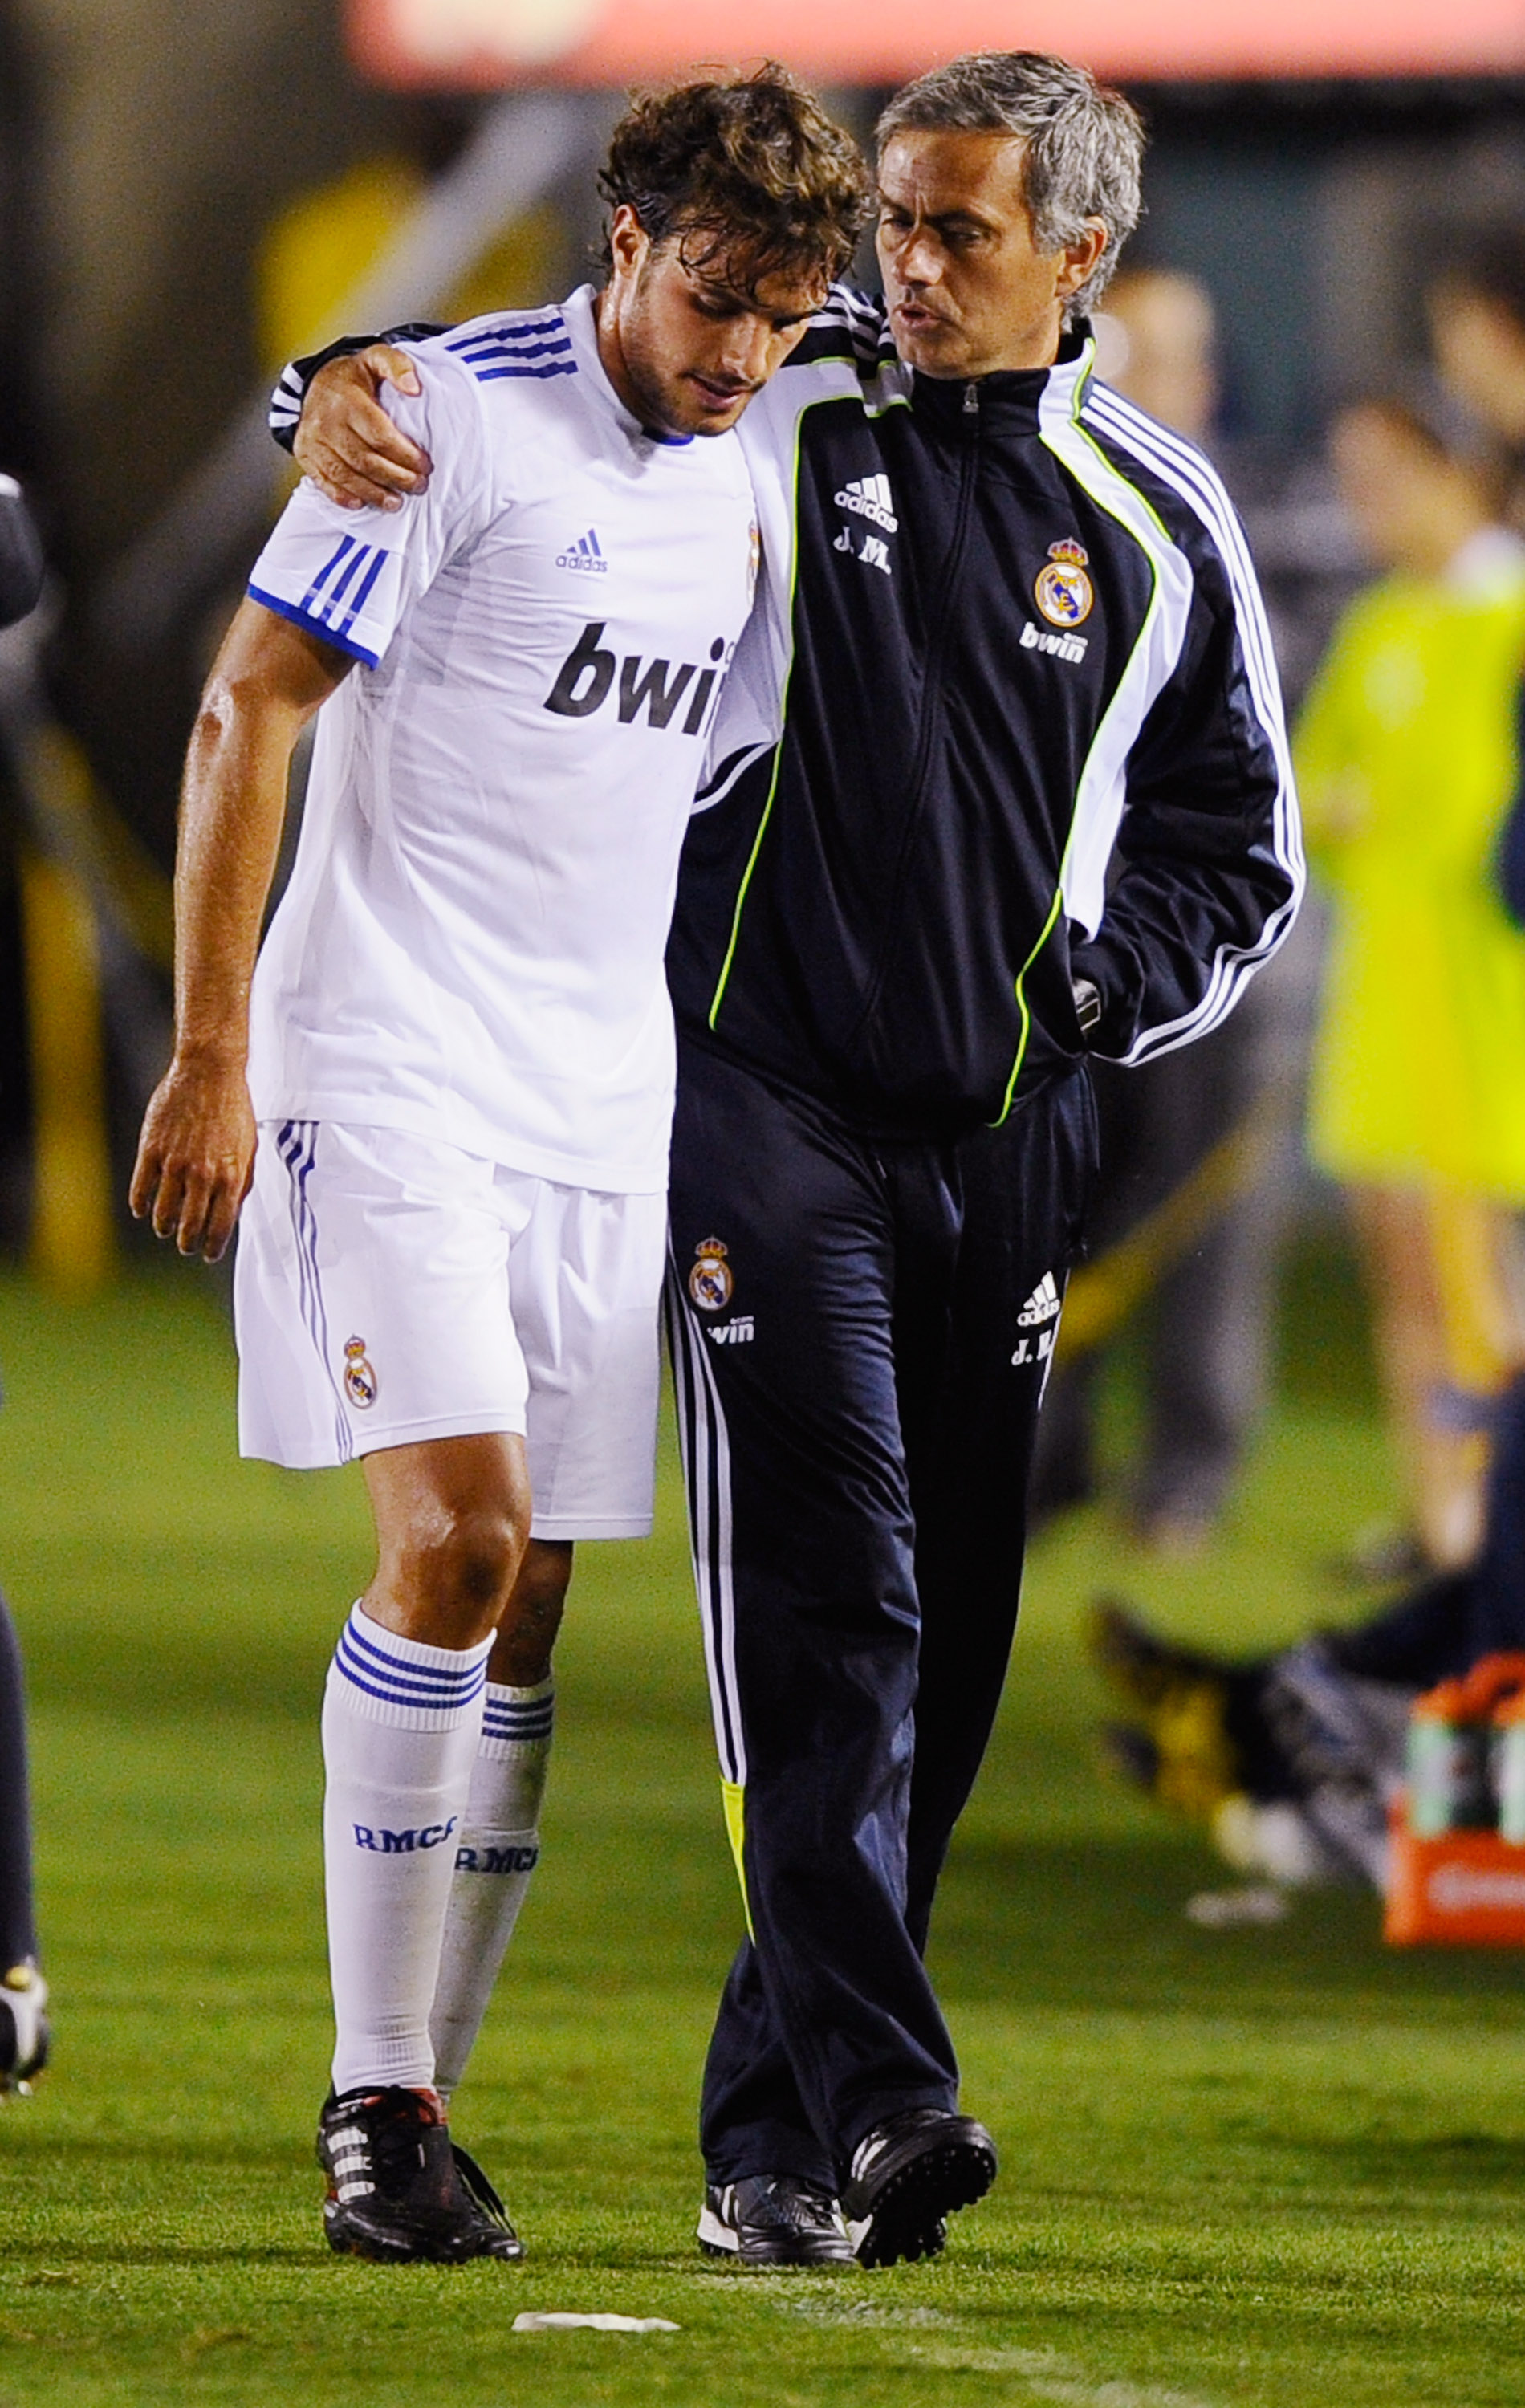 PASADENA, CA - AUGUST 07: Pedro Leon of Real Madrid with coach Jose Mourinho  during their pre-season friendly soccer match against Los Angeles Galaxy on August 7, 2010 at the Rose Bowl in Pasadena, California. Real Madrid will travel back to Spain after